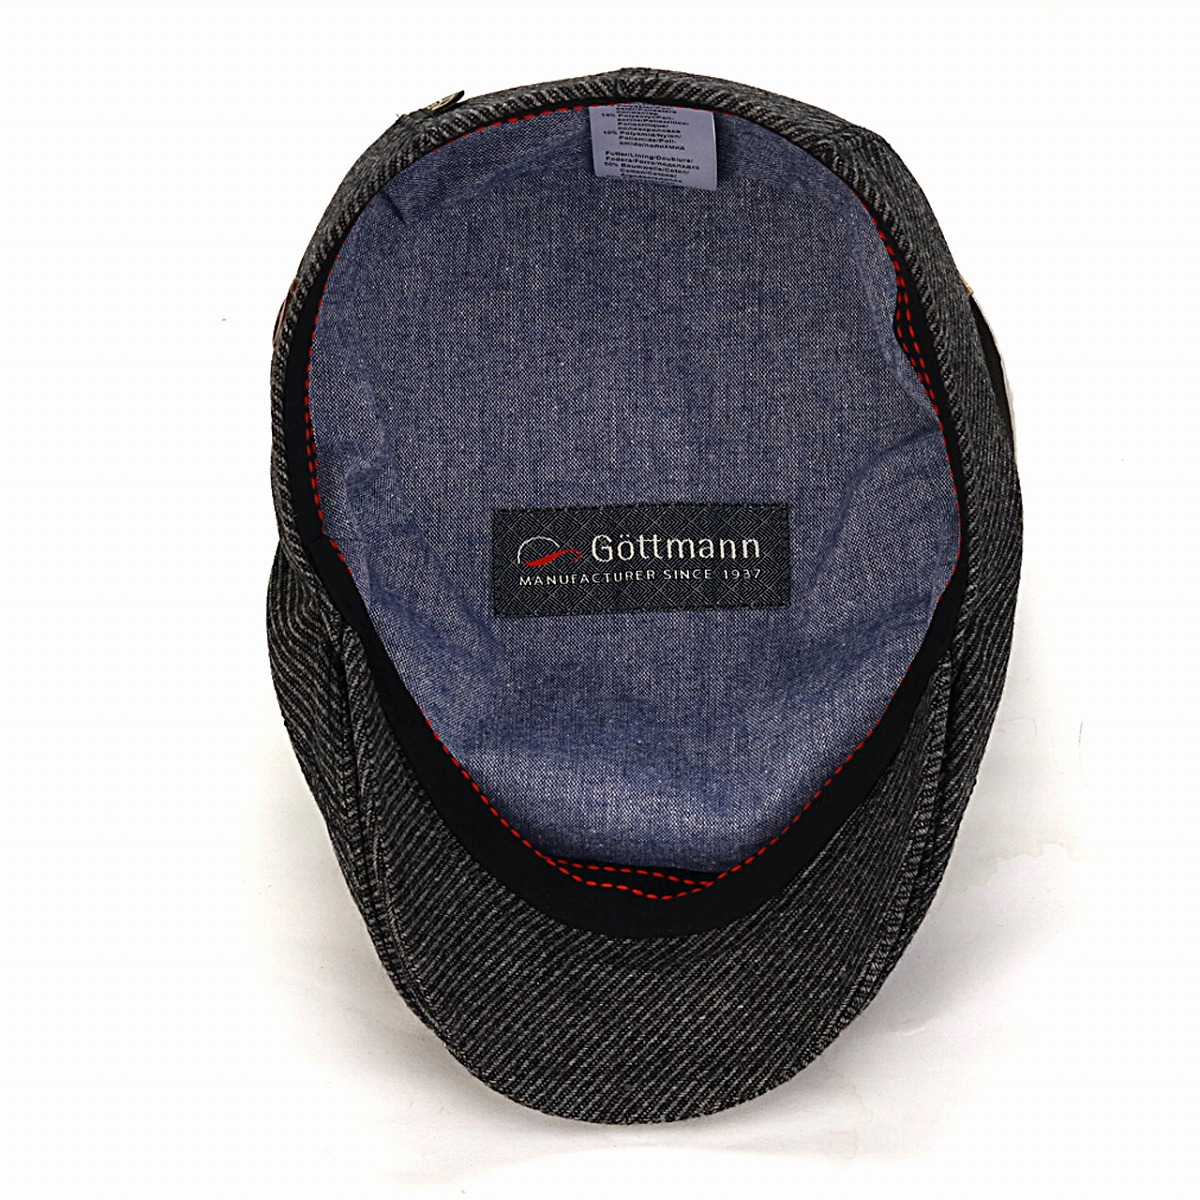 408c1e4fdd99f ... Gottmann サイズゴットマン hat cold protection men dark gray (Christmas gift  packing lapping free of ...